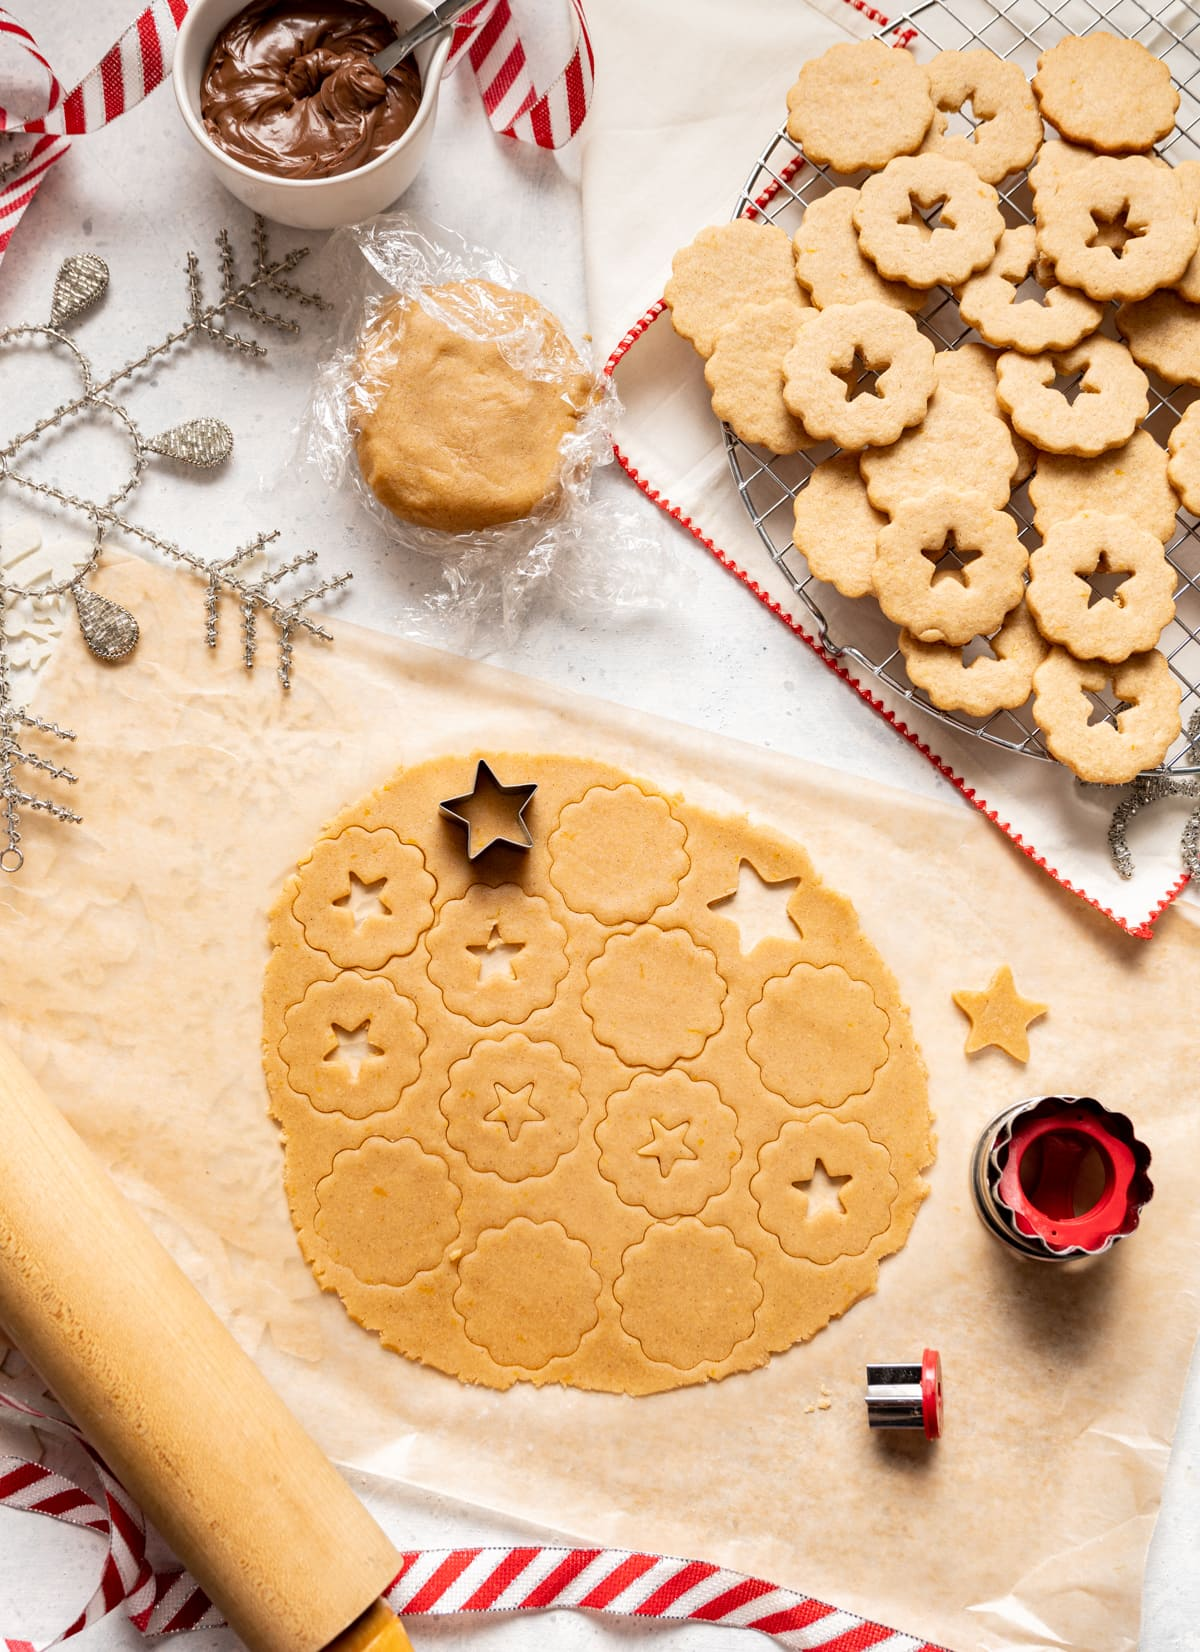 rolled out dough with cookie cut outs, wire rack with cookies cooling, dough rapped in plastic bowl of chocolate spread